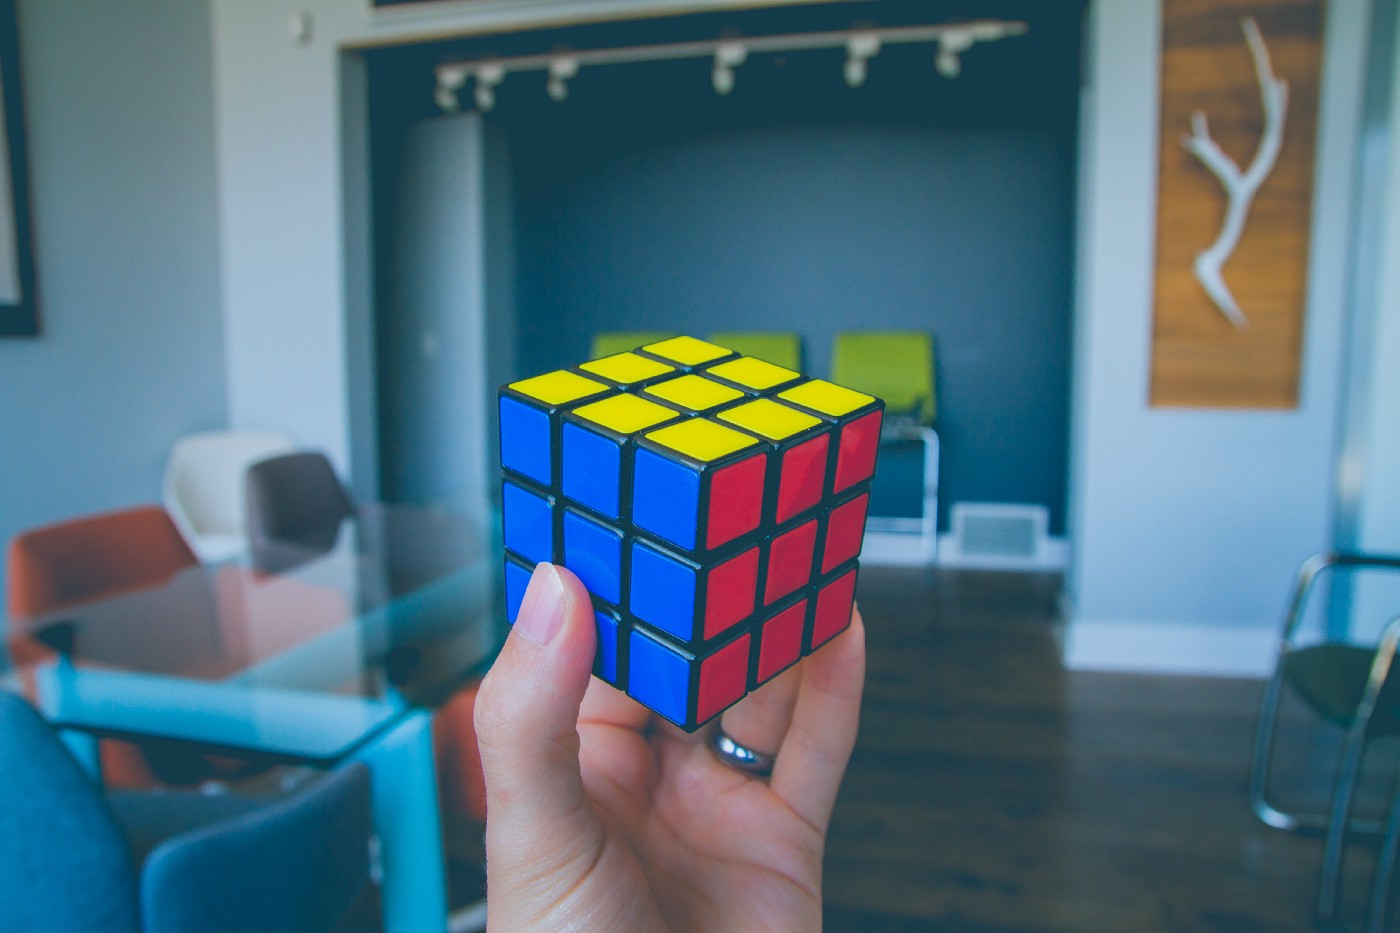 A hand holding up a solved Rubiks Cube.